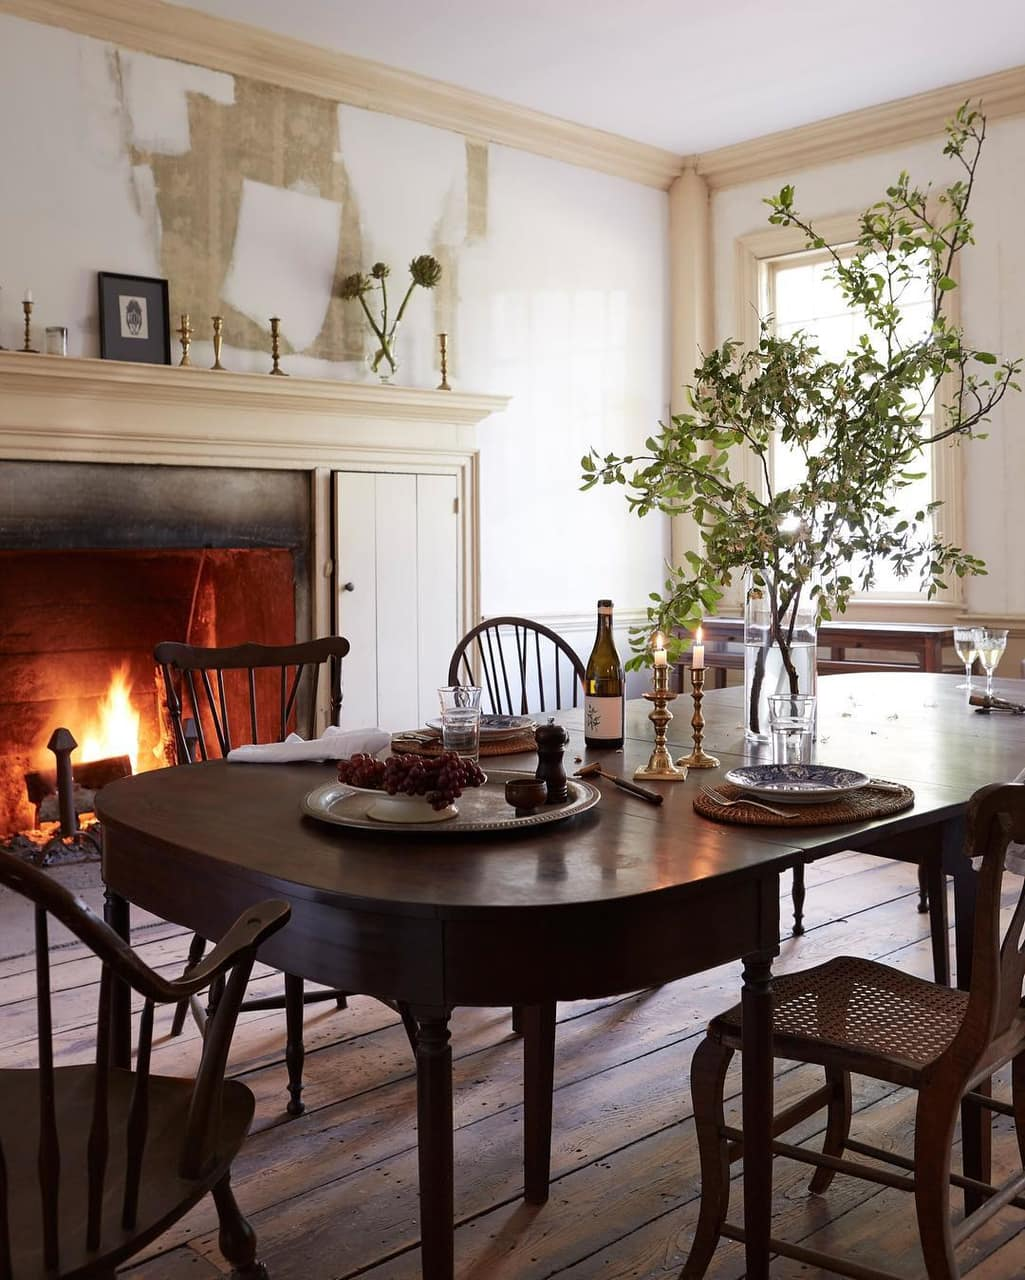 interiors, decorating, farmhouse style and decor